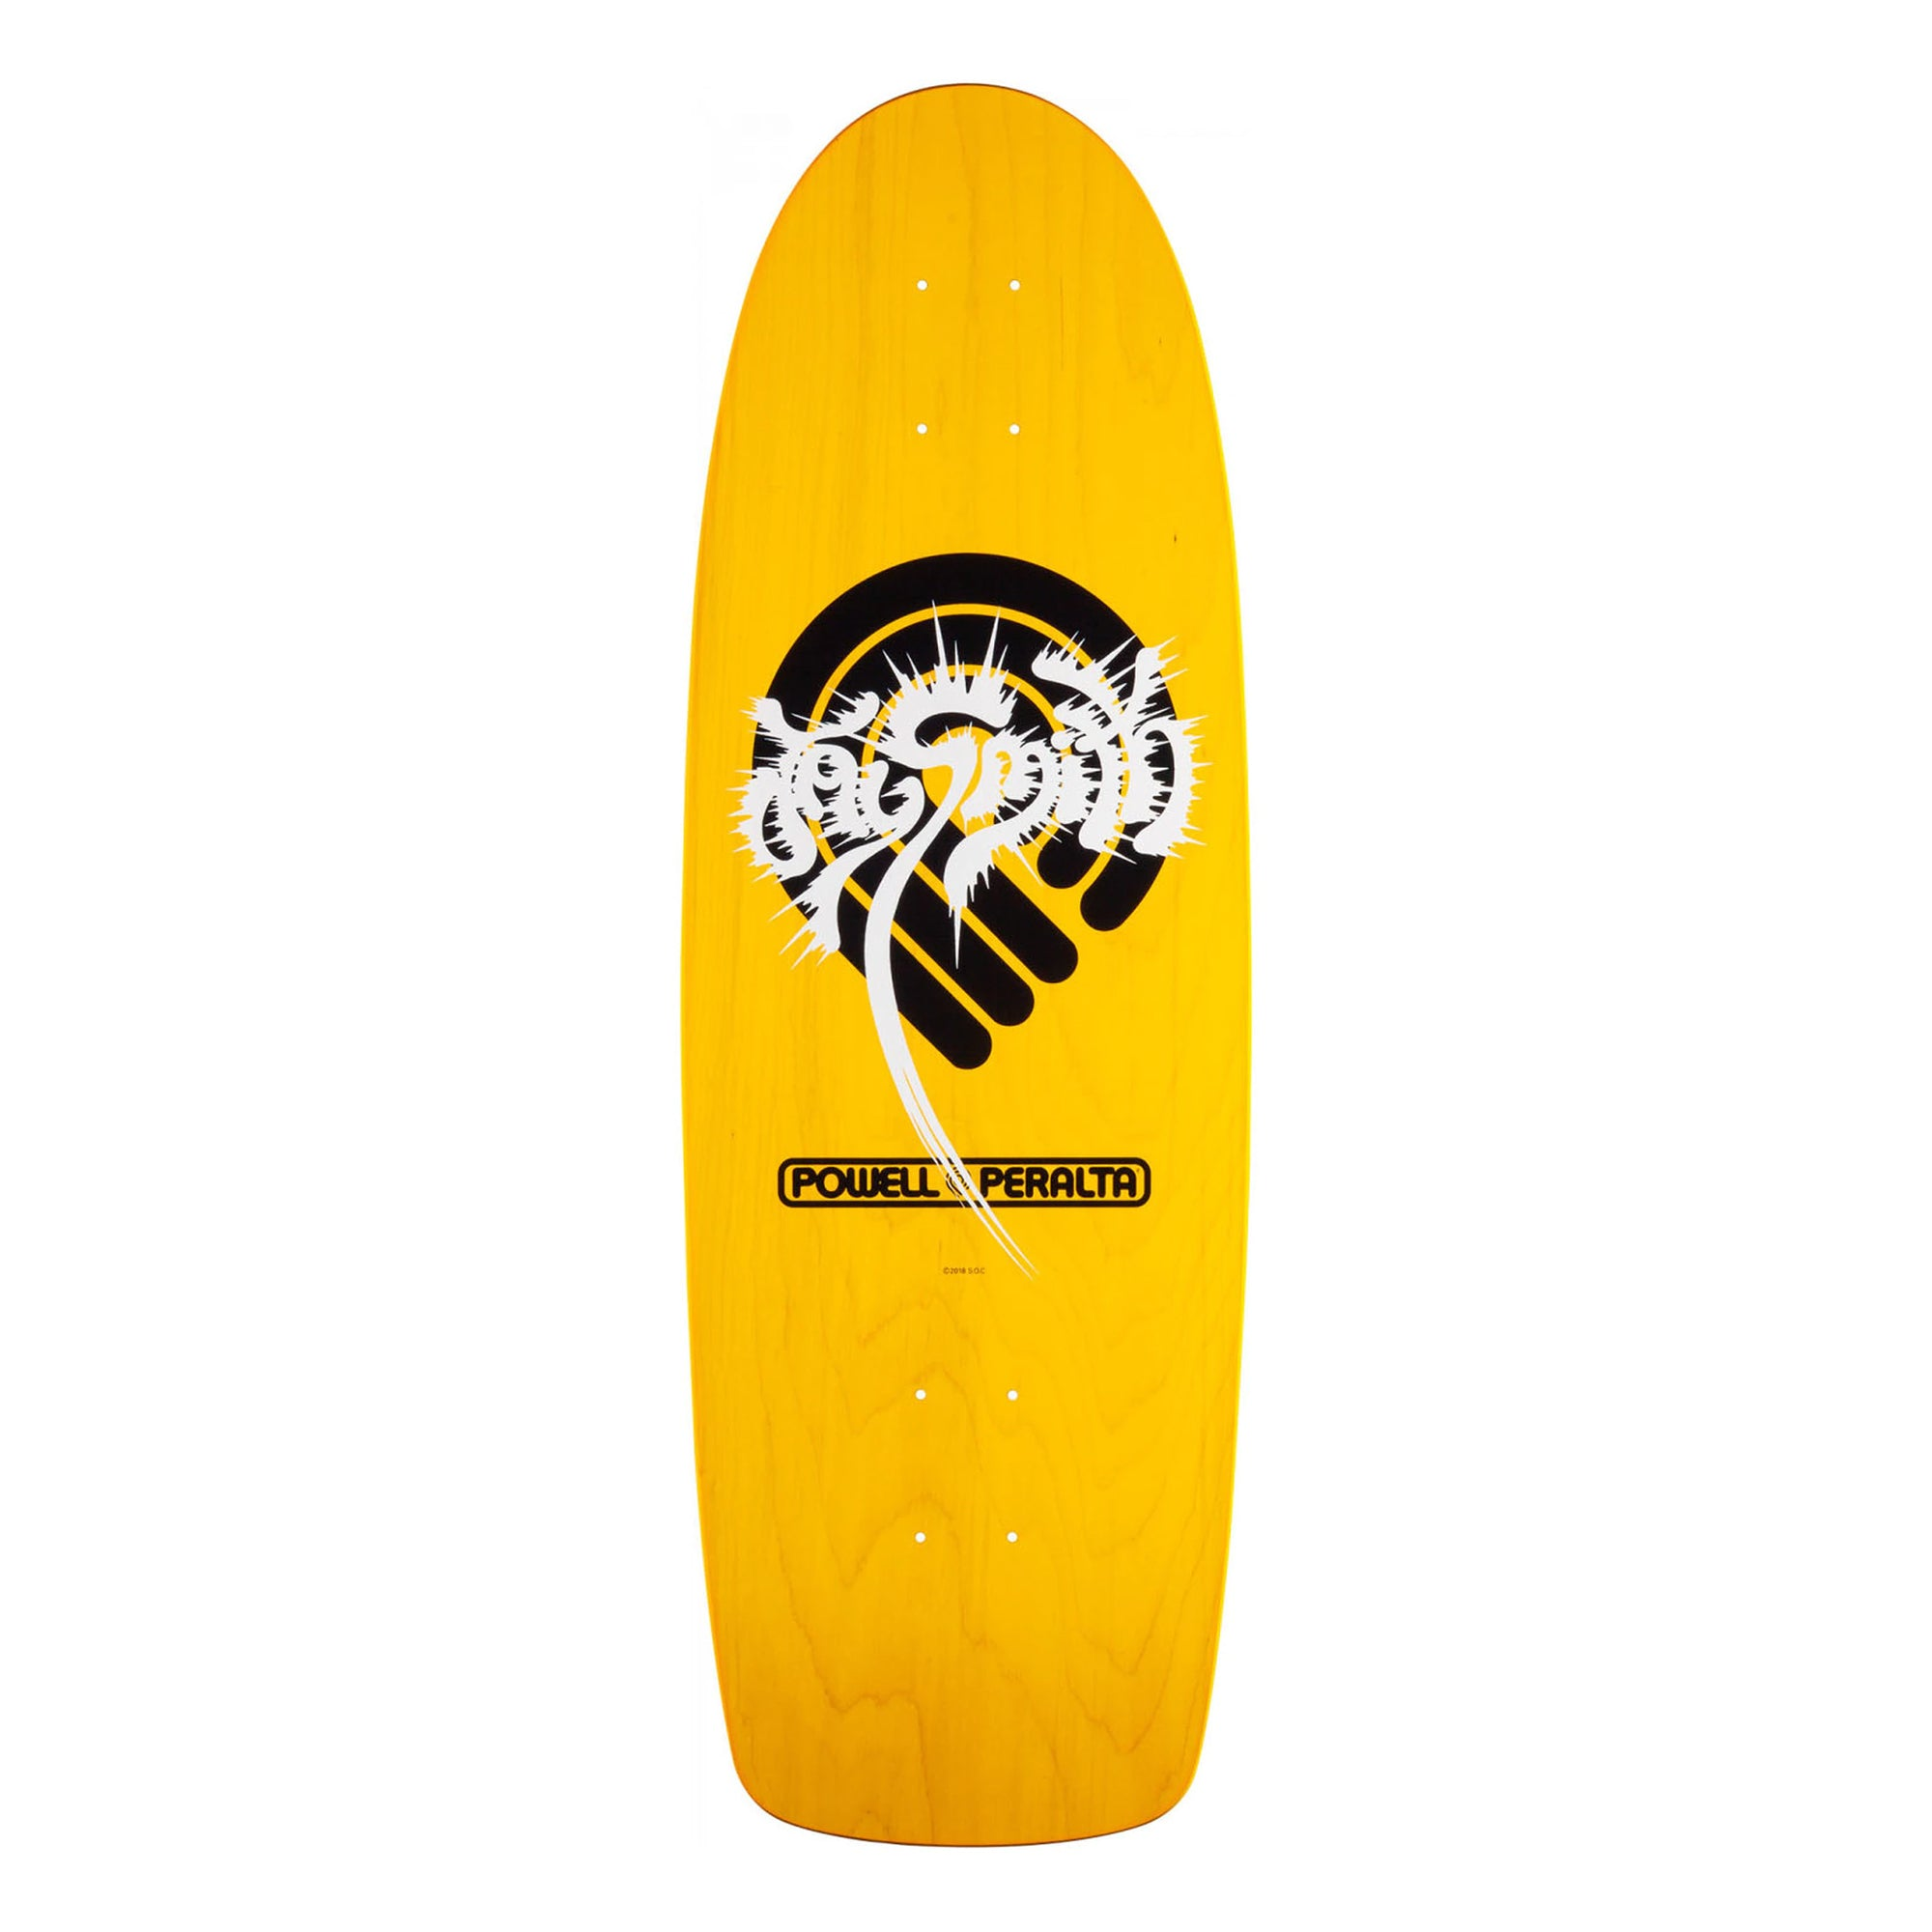 Powell Peralta Jay Smith Splash Old School Skateboard Deck